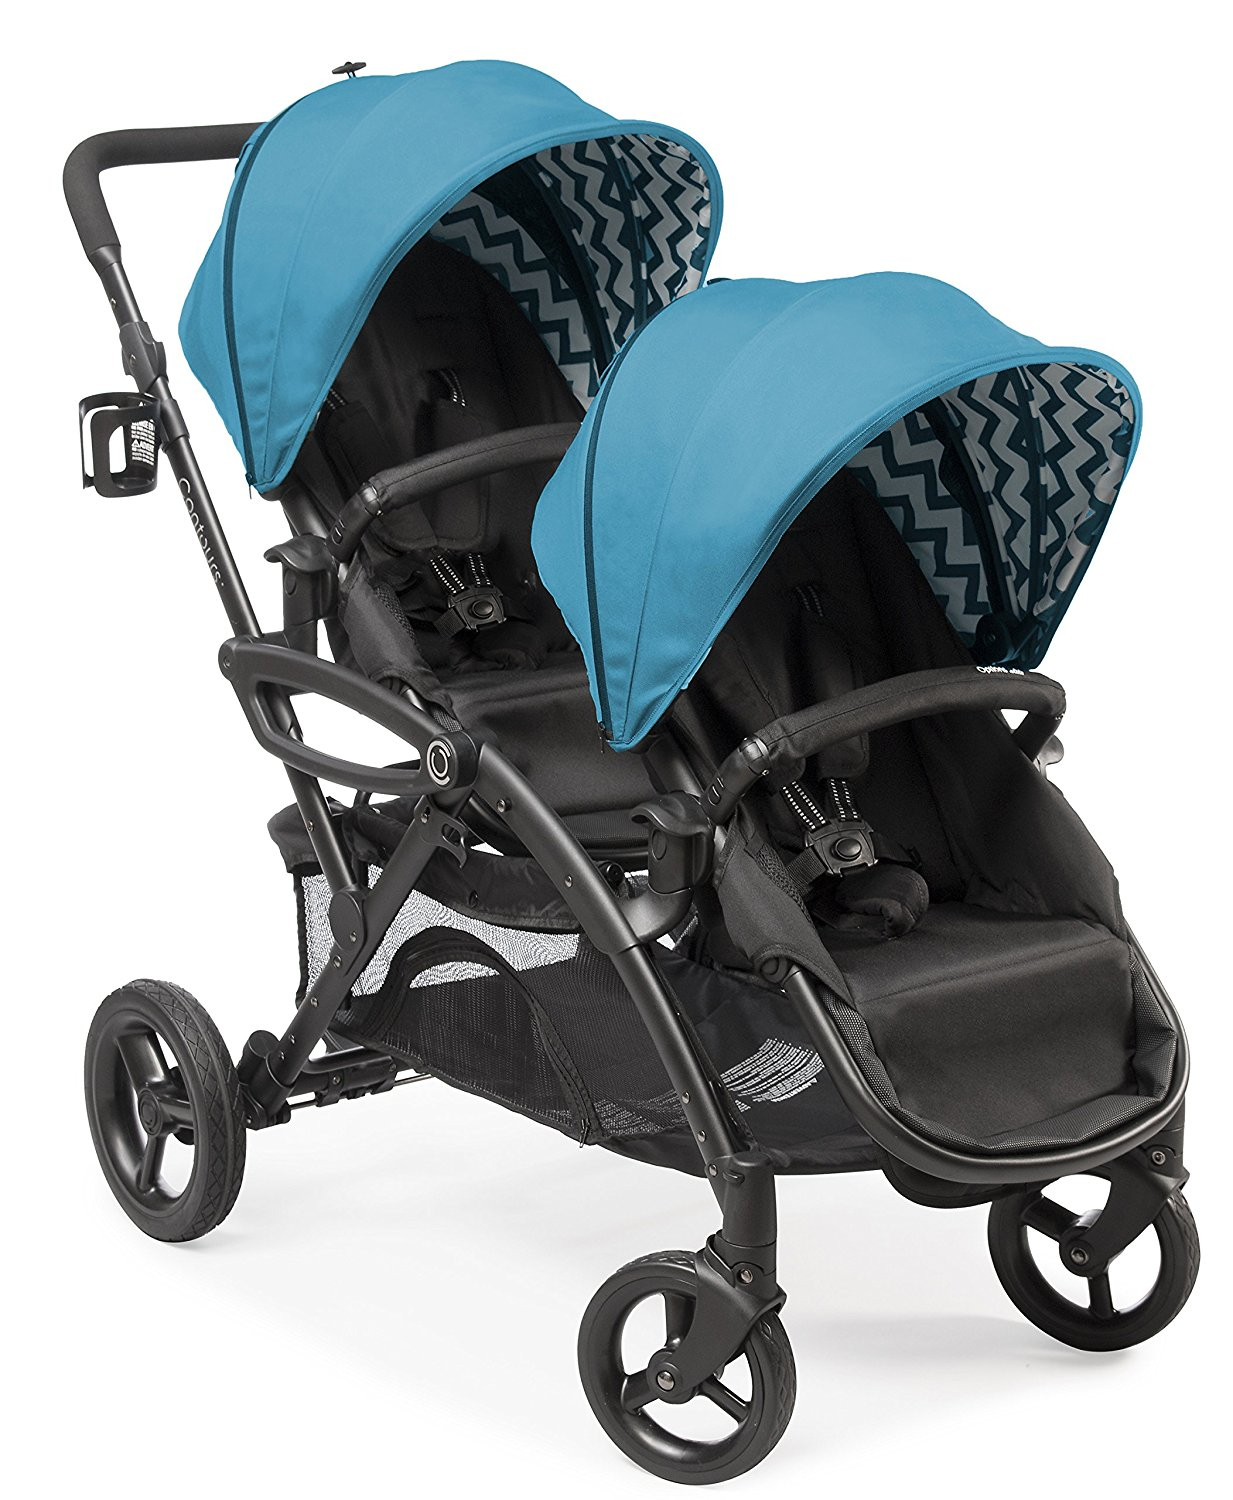 Double Stroller Best 2019 Best Double Stroller For Toddler And Infant Review 2019